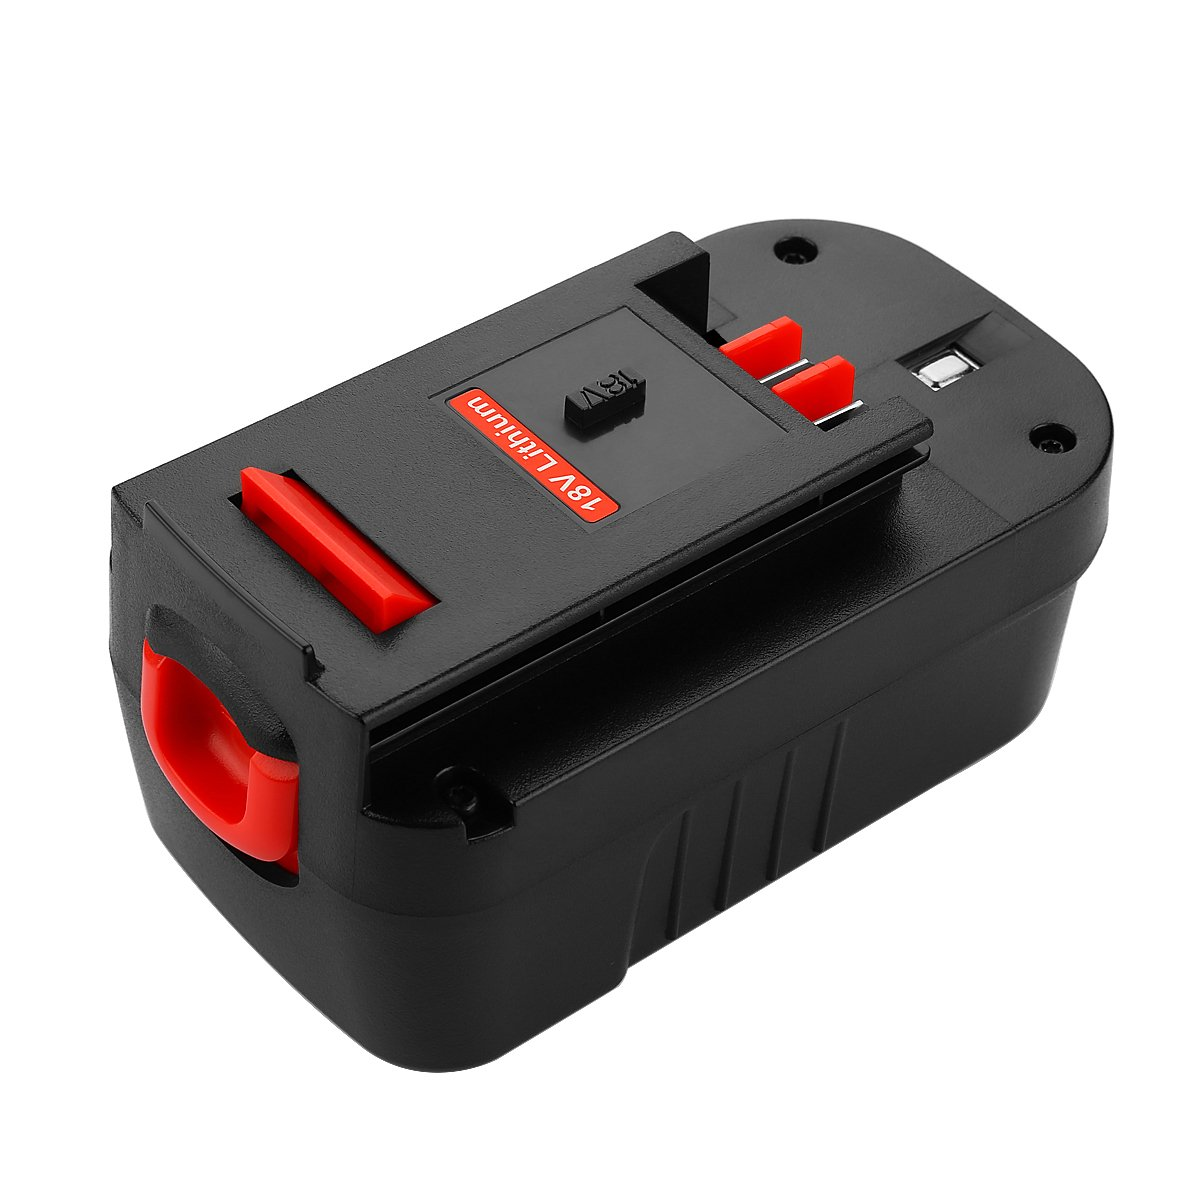 Energup Upgraded 5000mAh Lithium Black & Decker 18V Replacement Battery for HPB18 HPB18-OPE 244760-00 A1718 FS18FL FSB18 Firestorm Black and Decker 18 Volt Battery by Energup (Image #7)